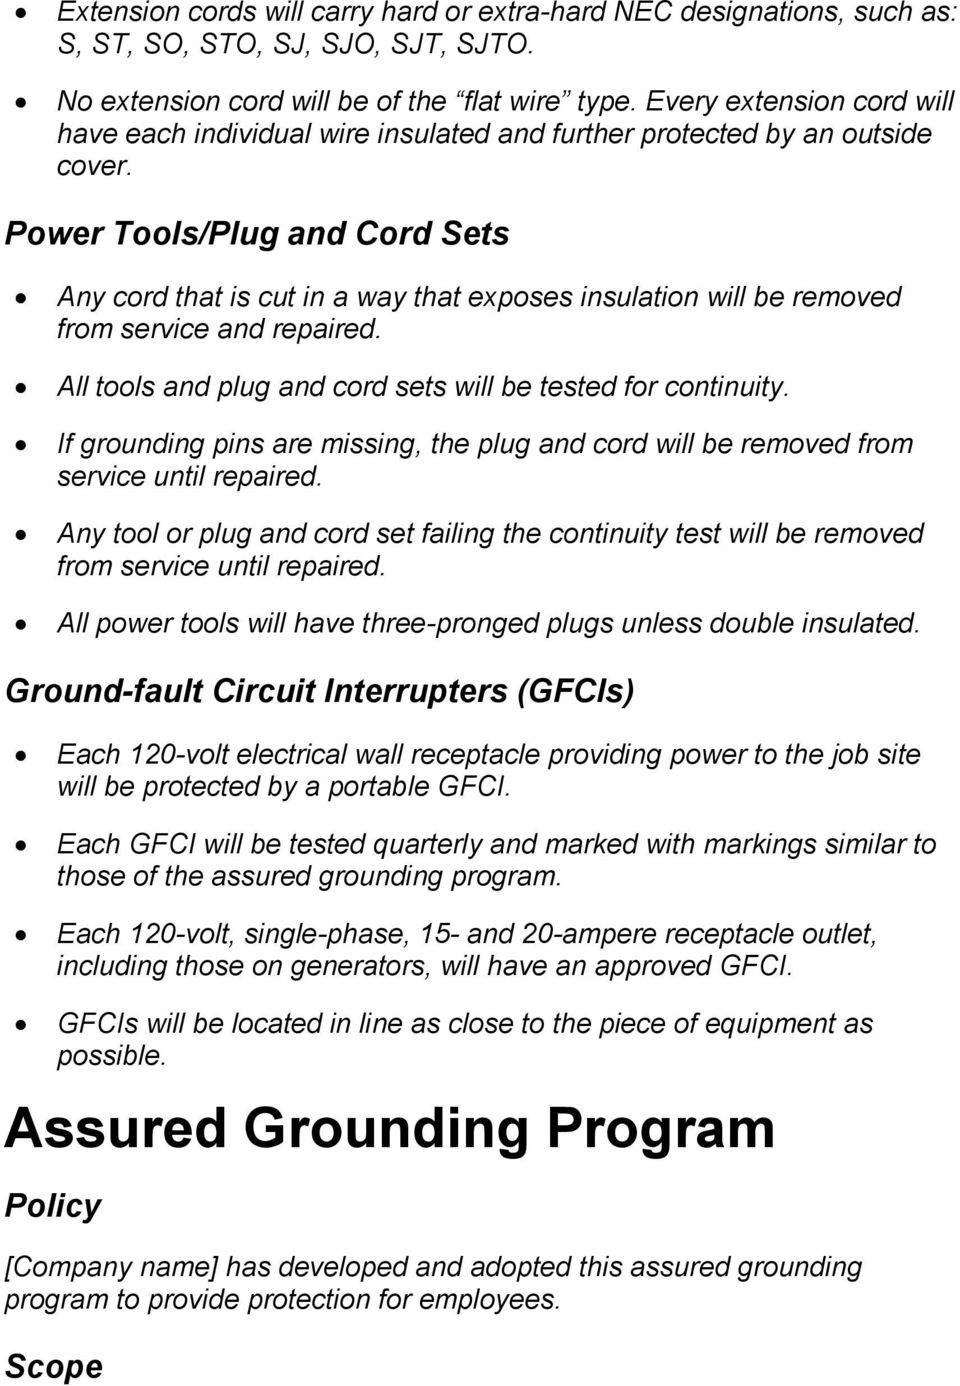 Power Tools/Plug and Cord Sets Any cord that is cut in a way that exposes insulation will be removed from service and repaired. All tools and plug and cord sets will be tested for continuity.